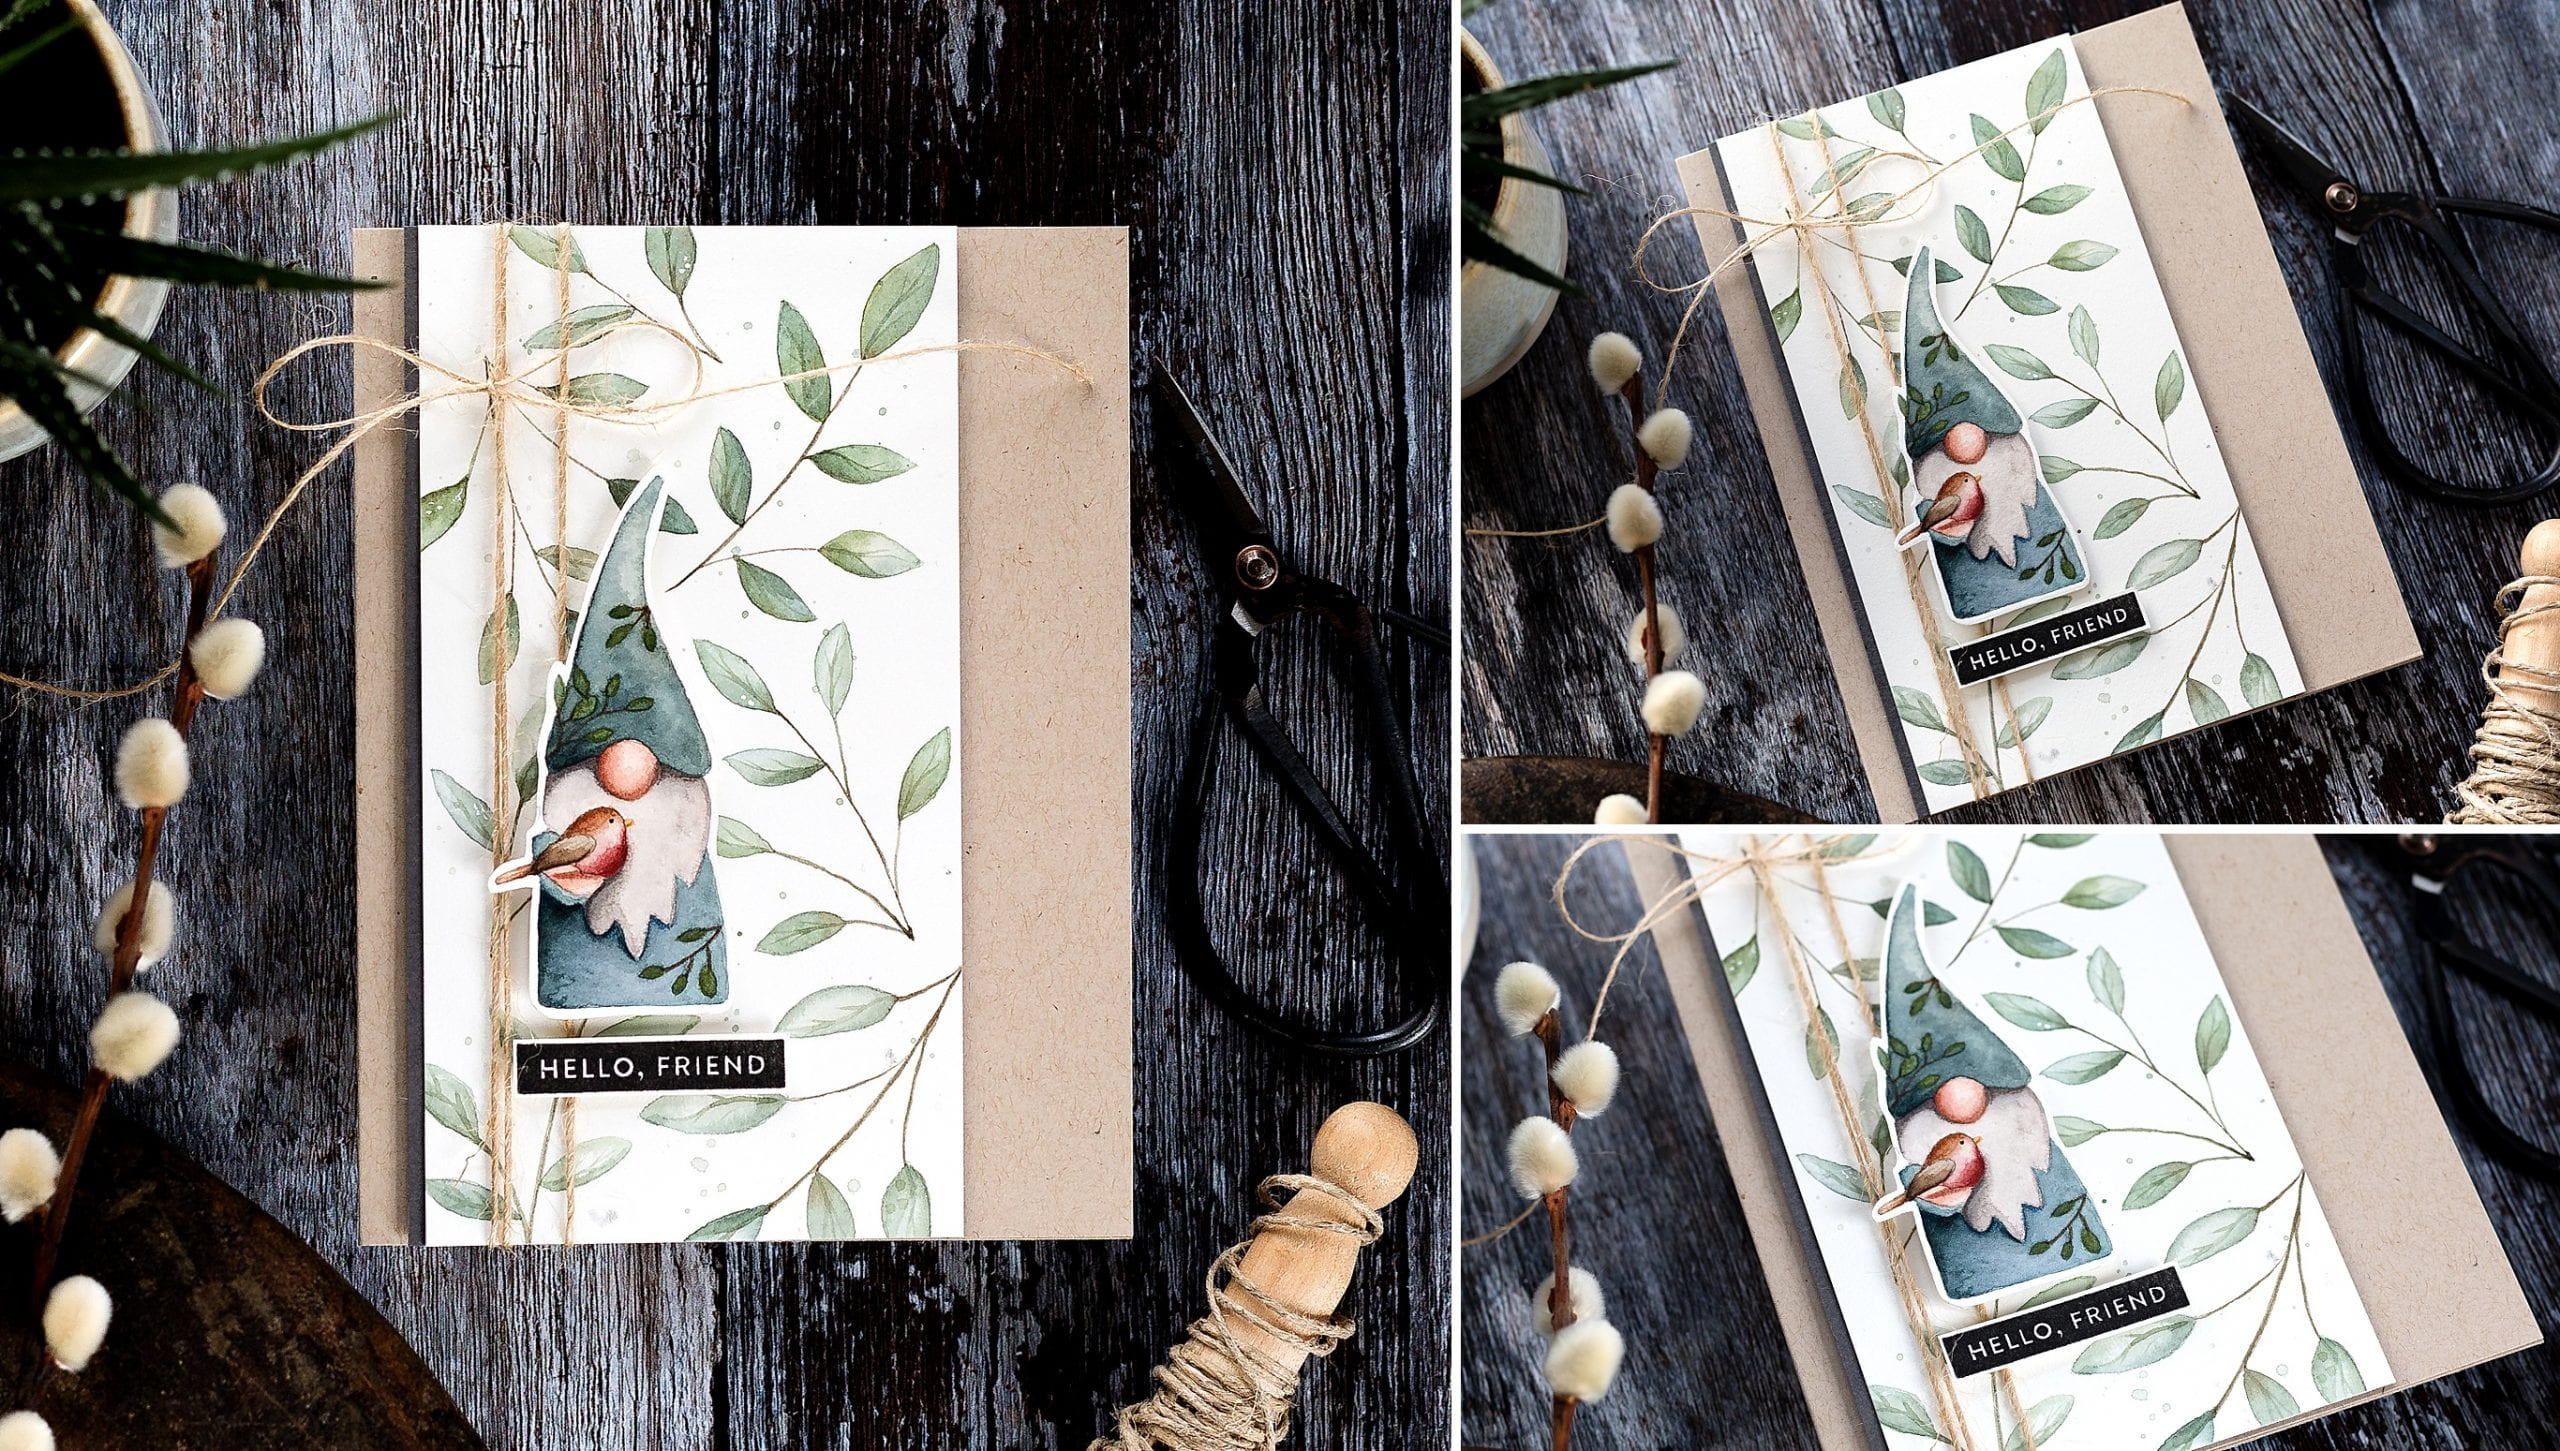 Woodland gnome watercoloured handmade card tutorial by Debby Hughes using supplies from Simon Says Stamp #tutorial #watercolor #homemade